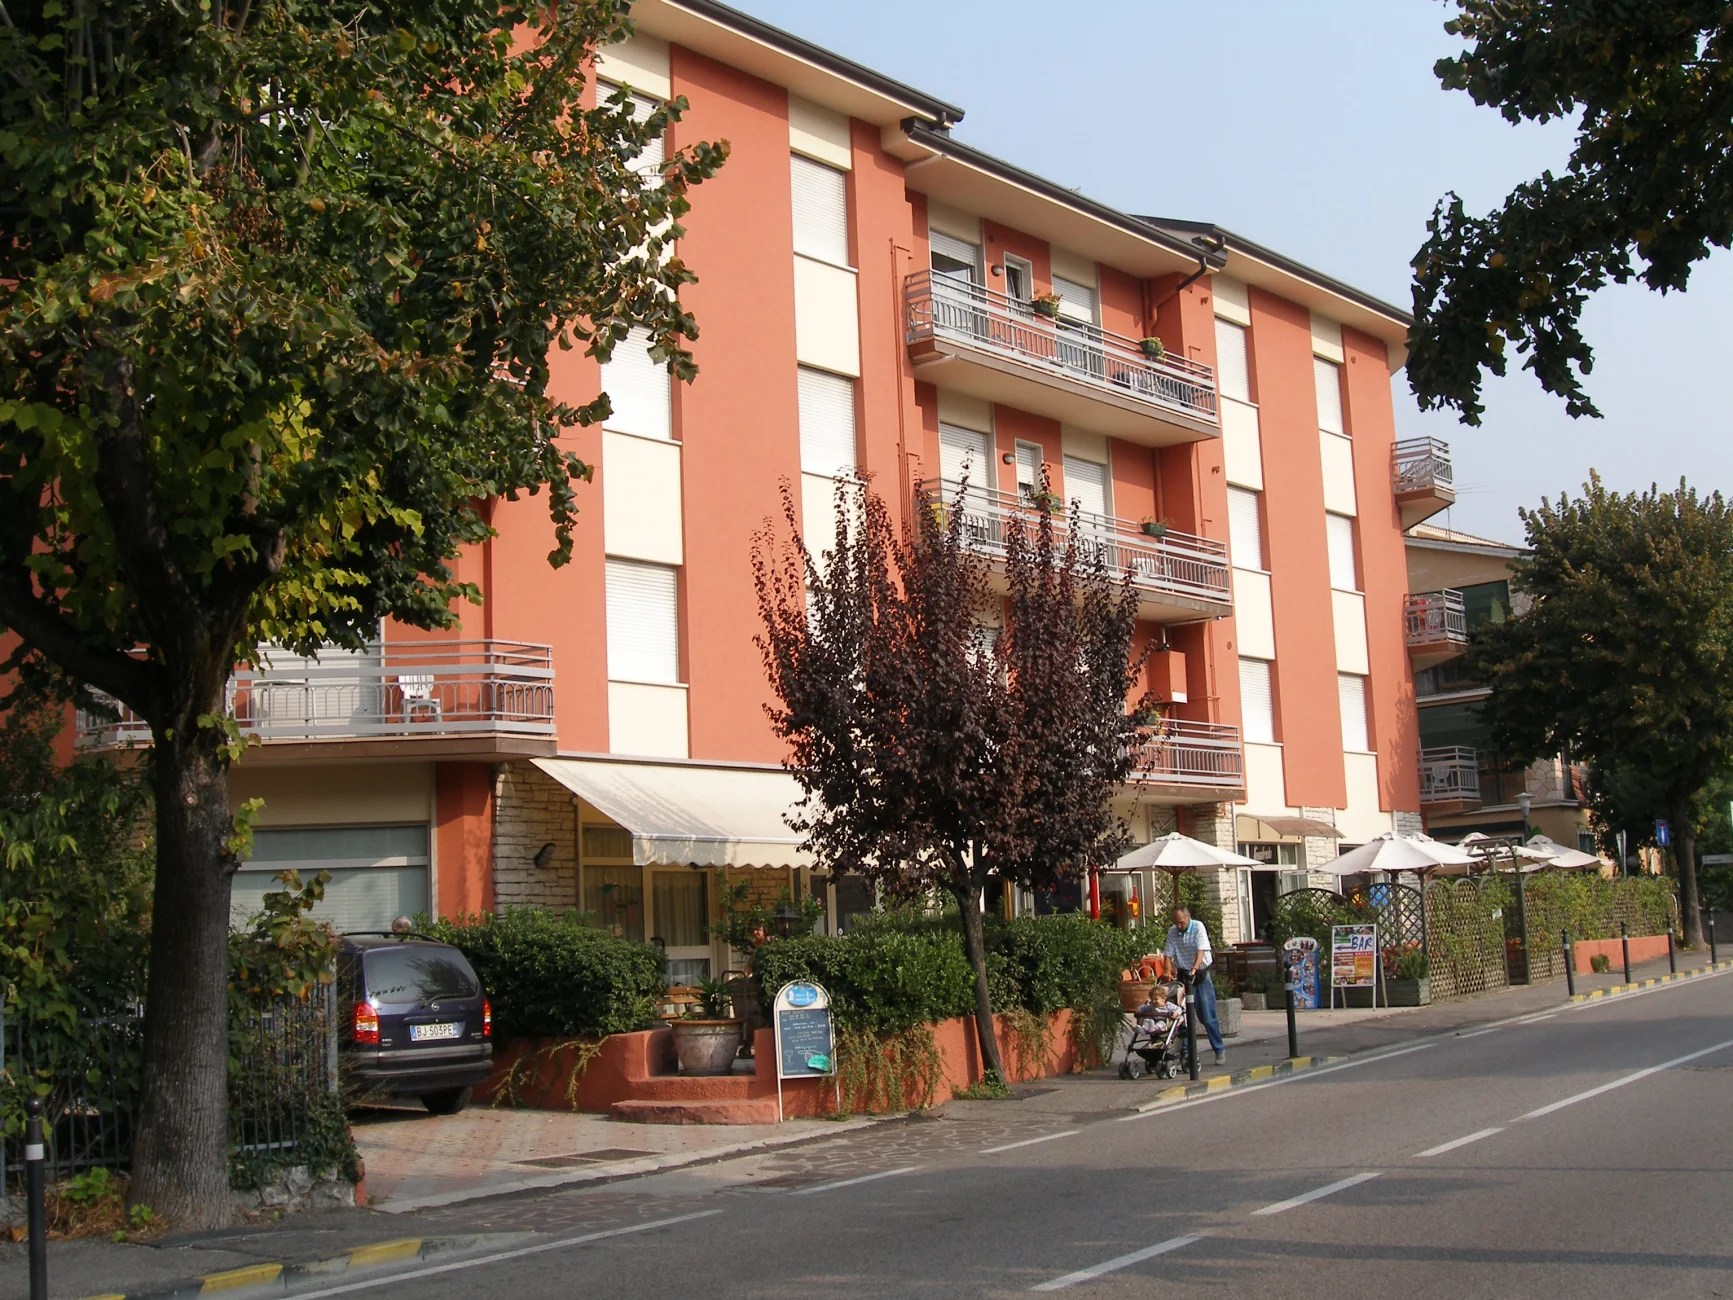 Hotel Caminetto Garda Hotel Doria Garda Trivago Co Uk